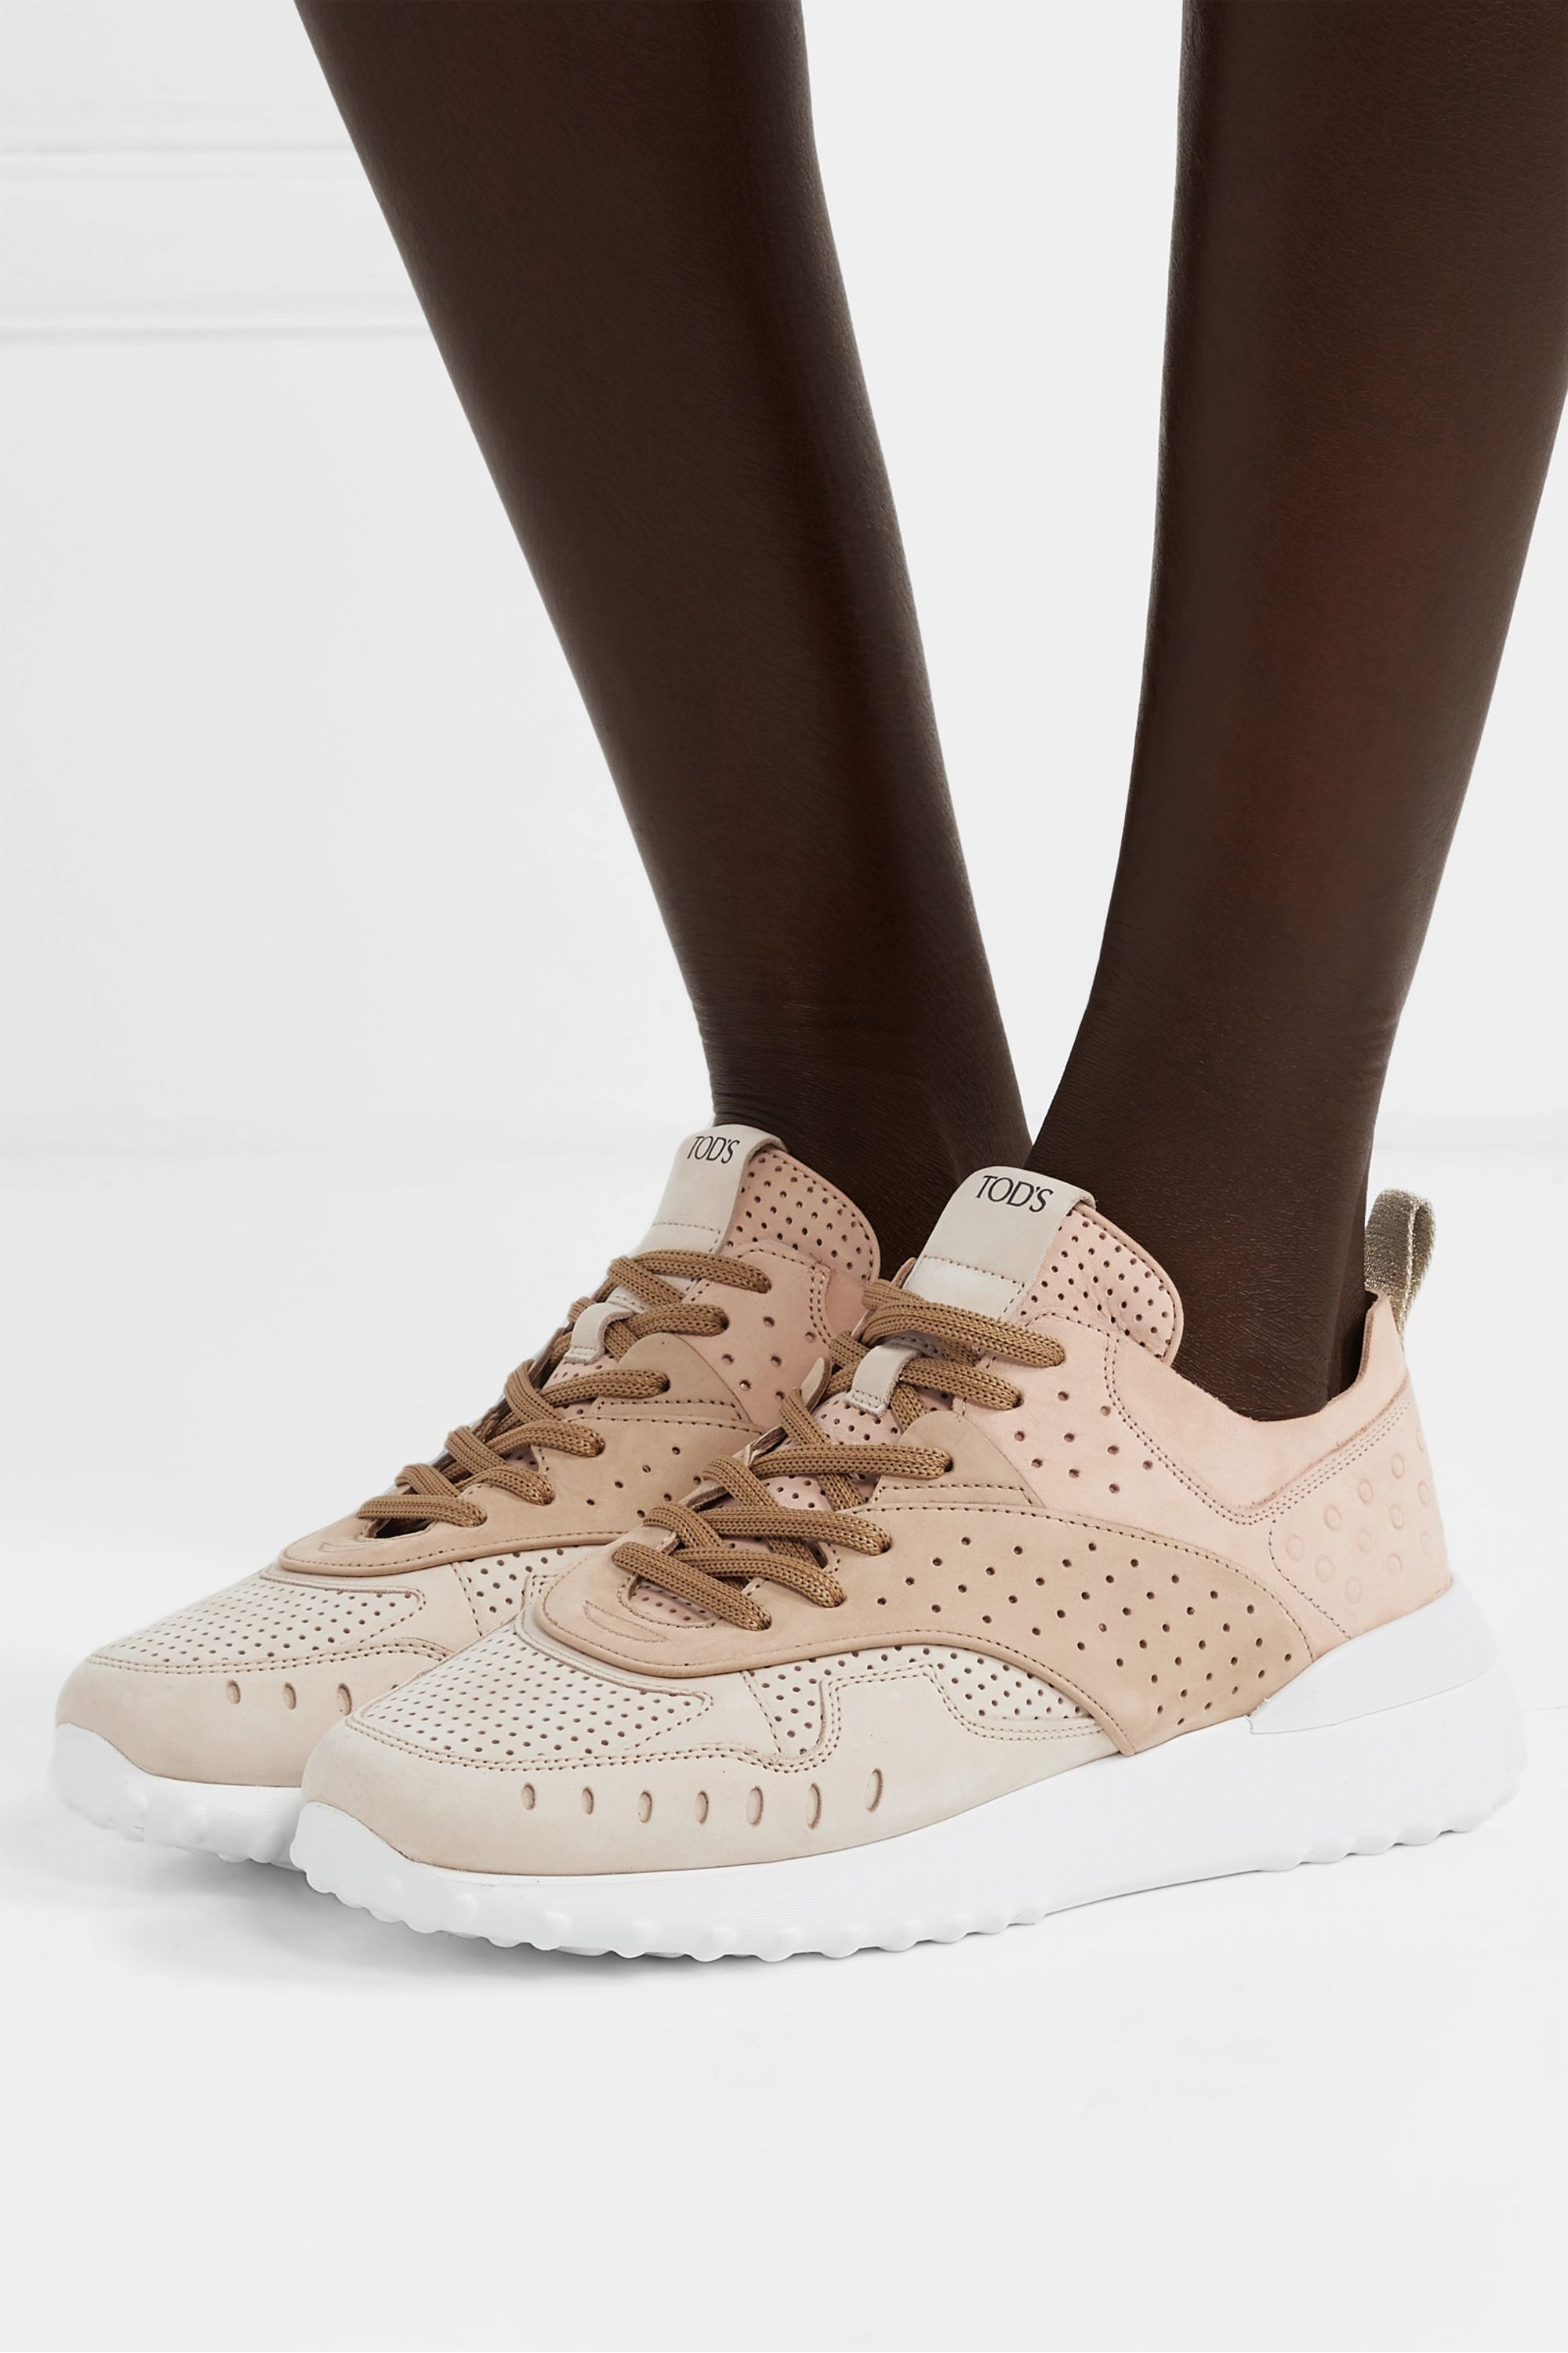 Beige Perforated color-block suede